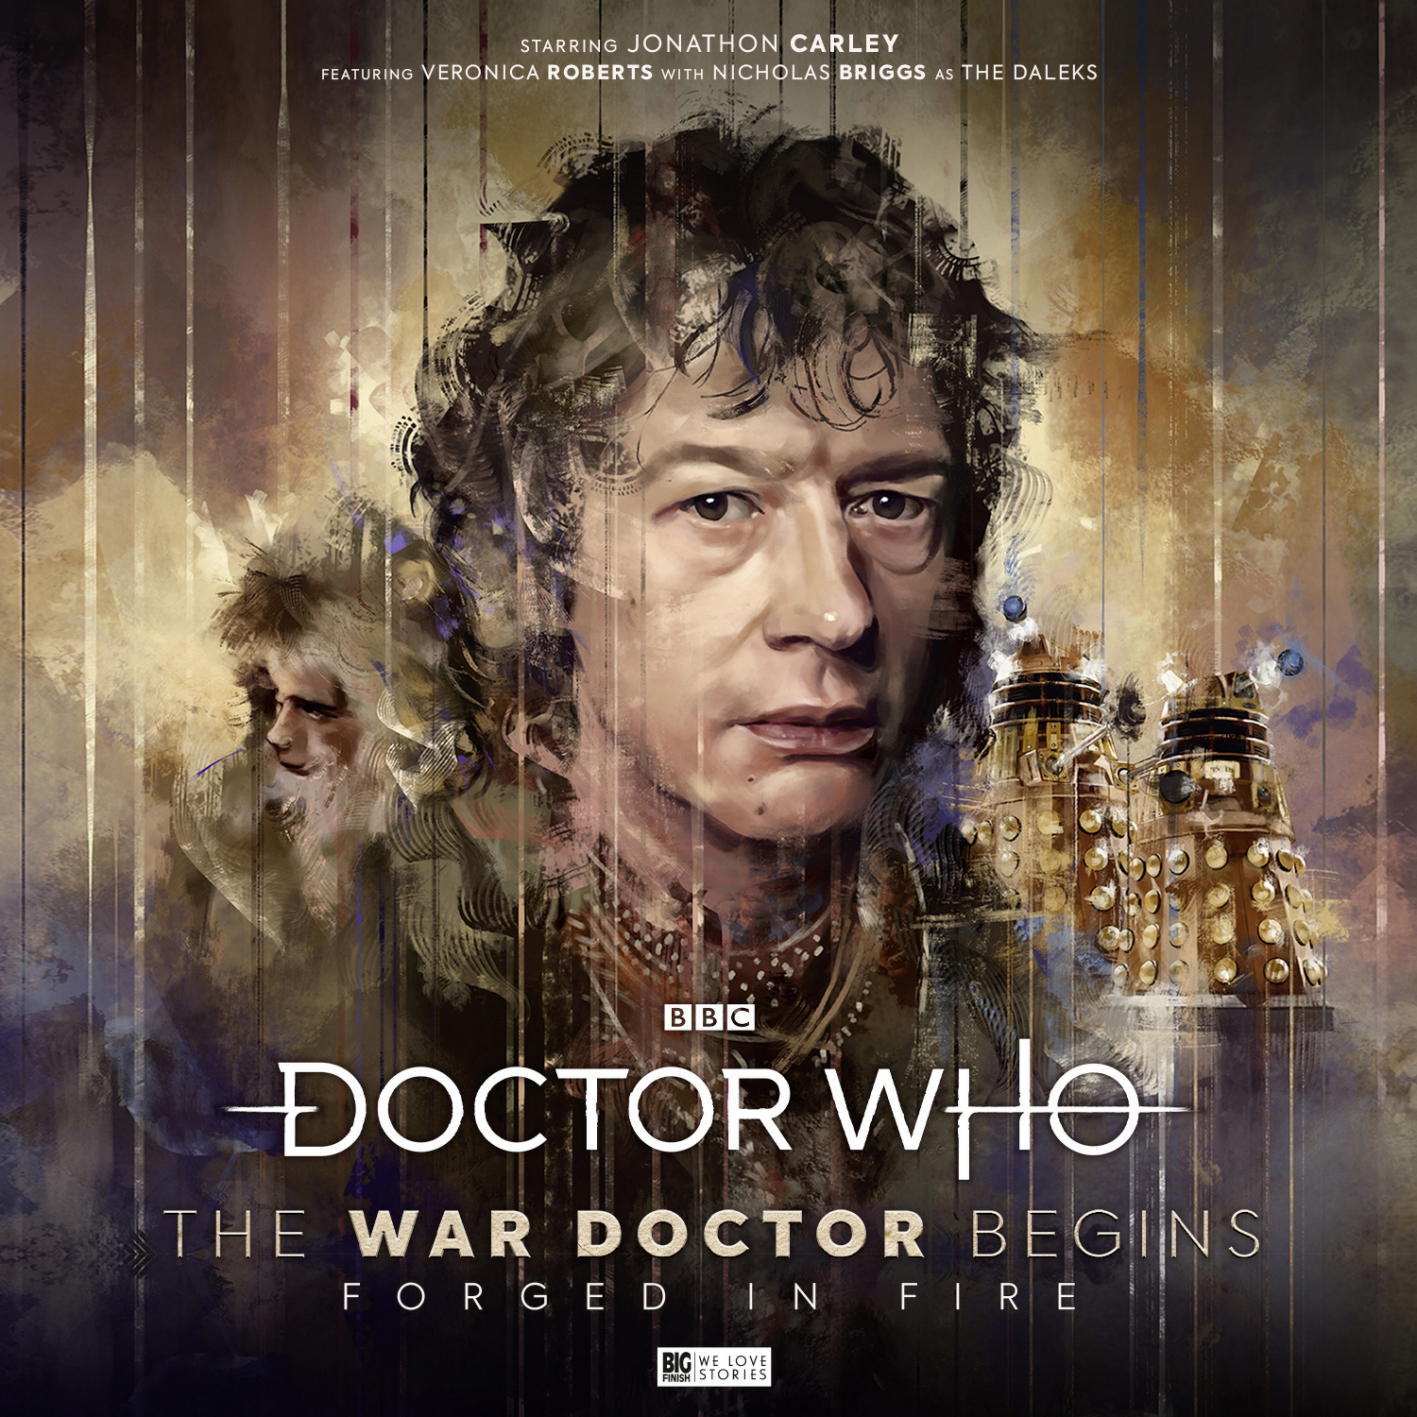 Doctor Who: The War Doctor Begins 1 - Forged in Fire (c) Big Finish Producitons